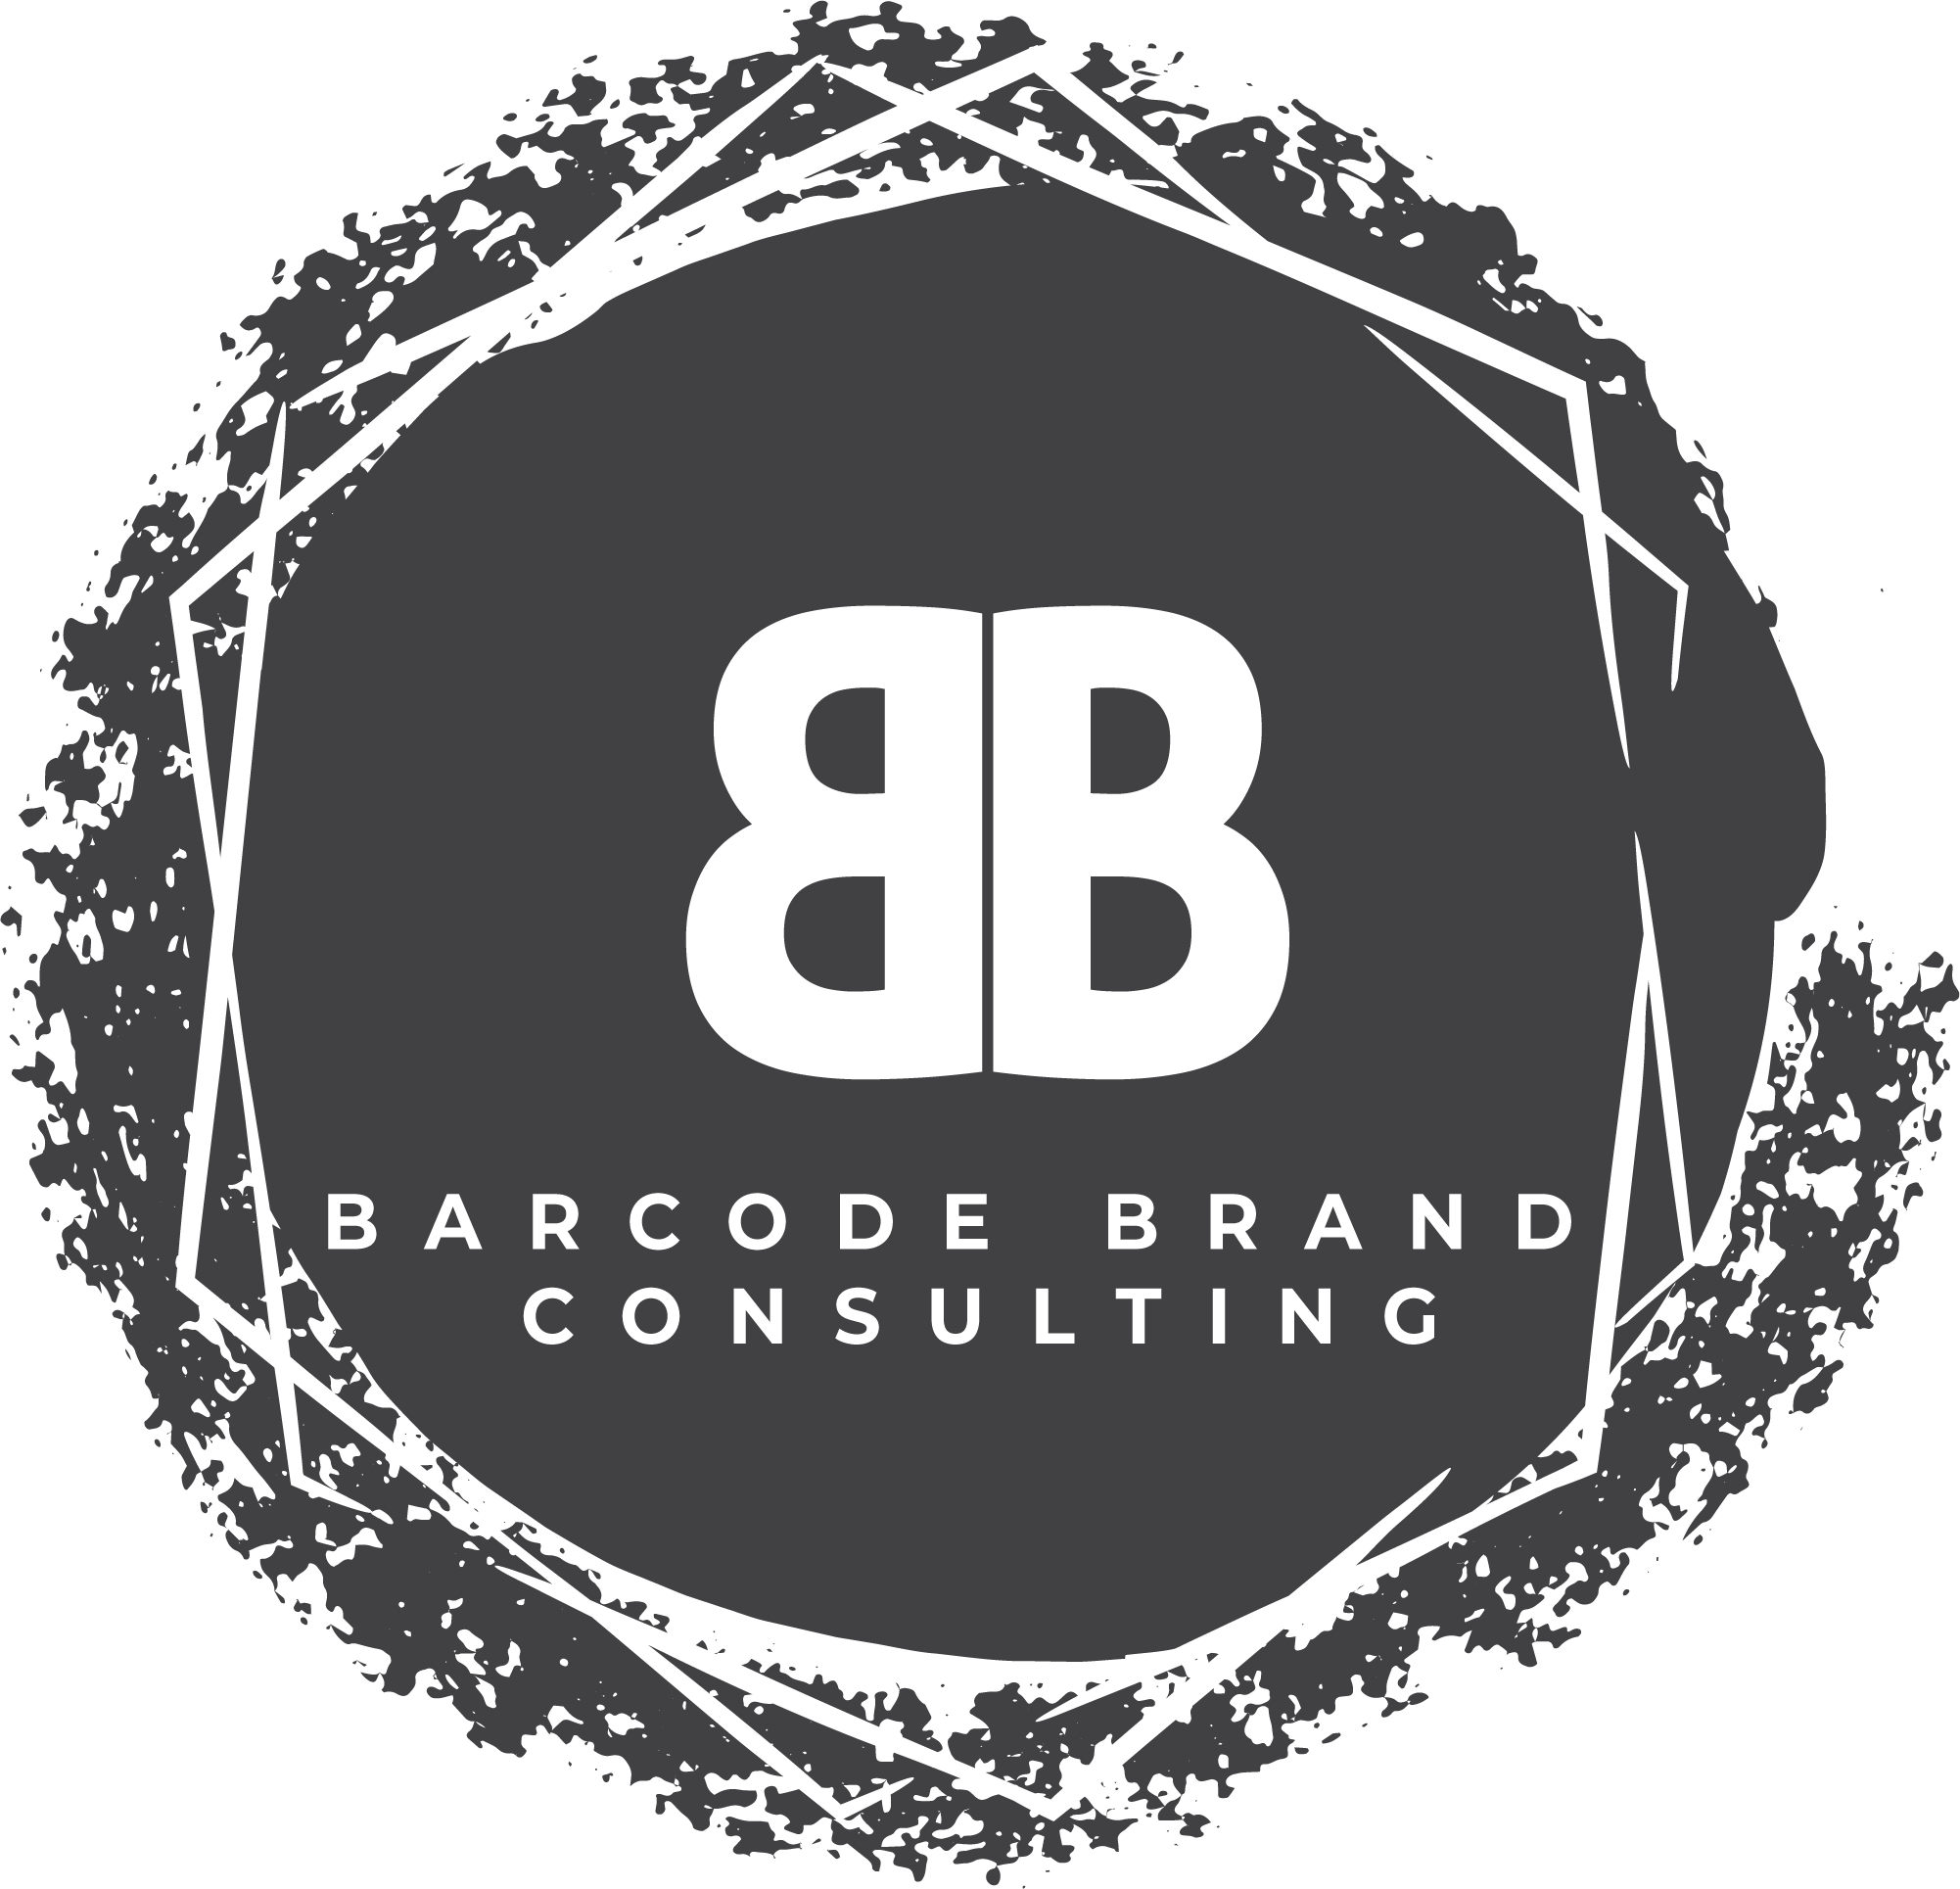 Barcode Brand Consulting